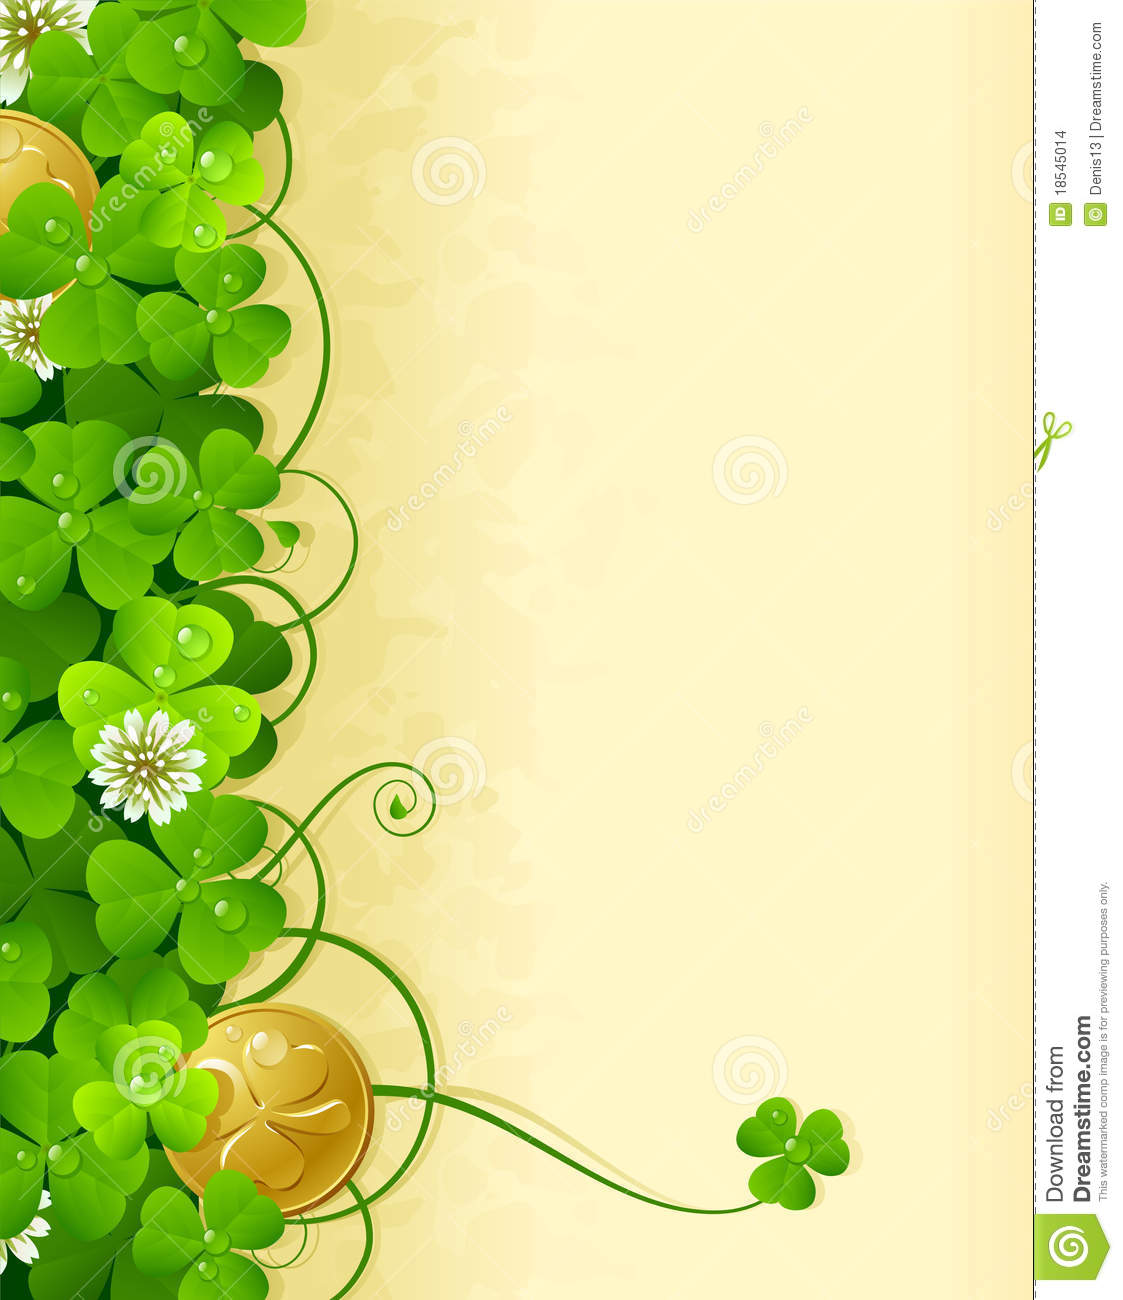 St Patricks Day Frame 3 Stock Vector Illustration Of Abstract